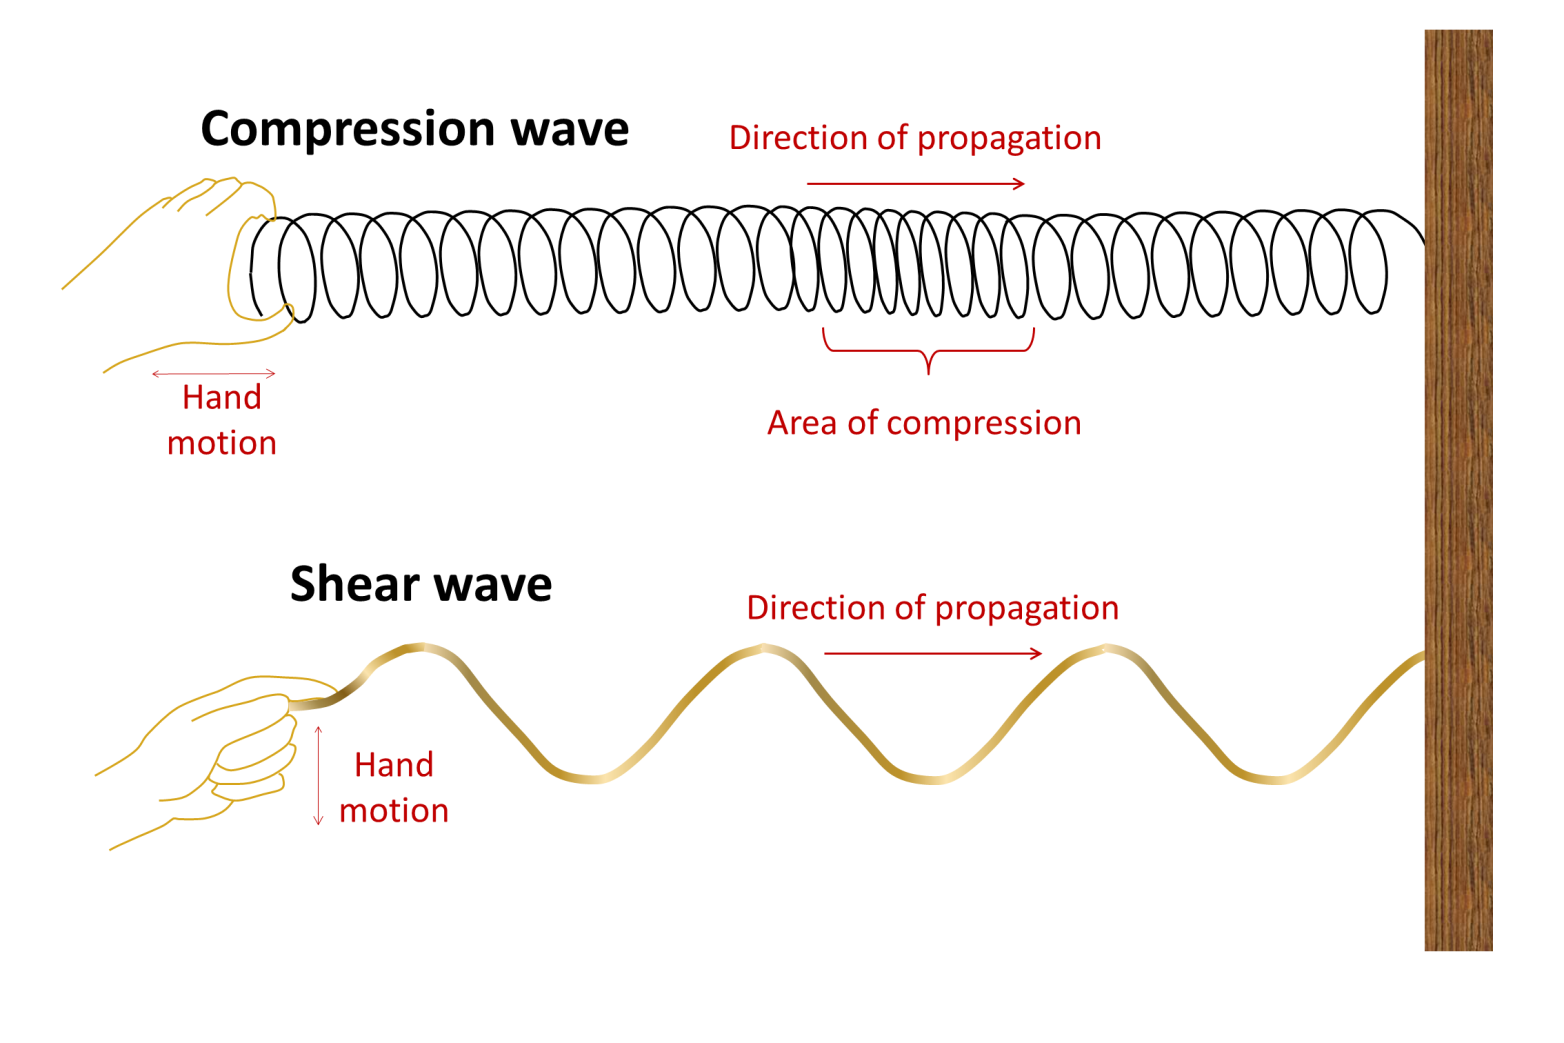 a compression wave can be illustrated by a spring (like a slinky) that is